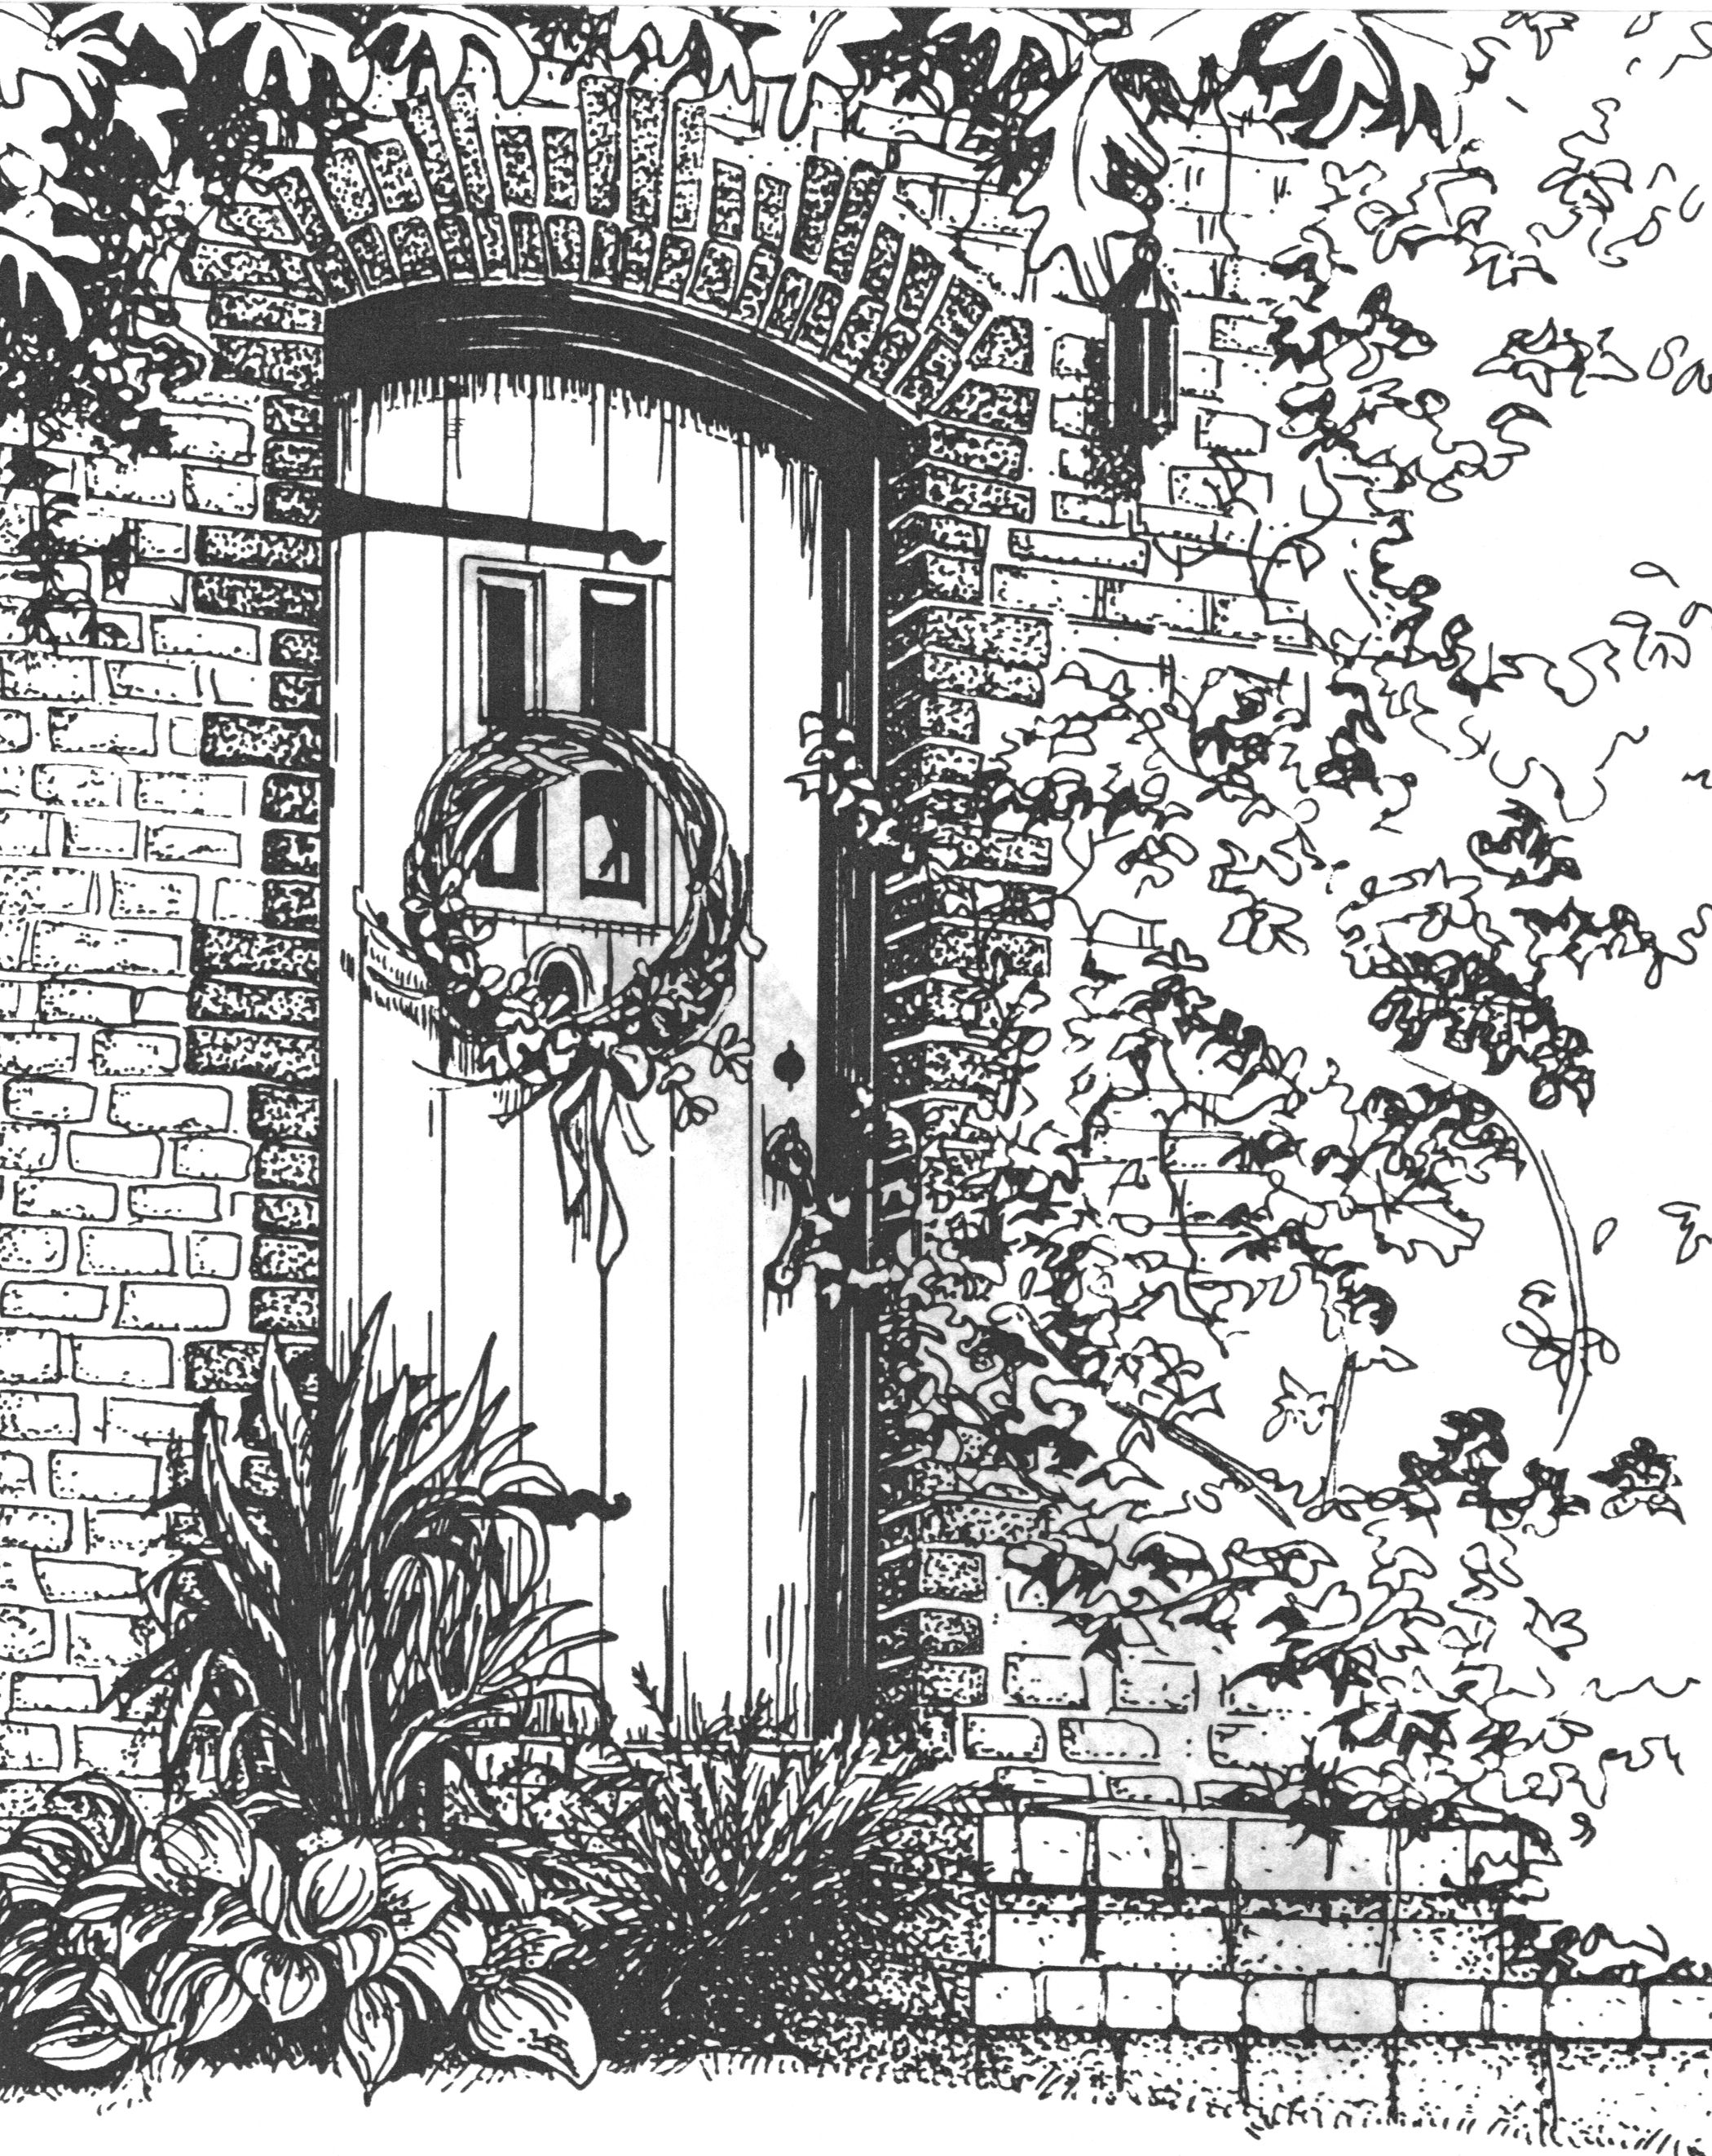 Architectural rendering done in pen and ink on crescent